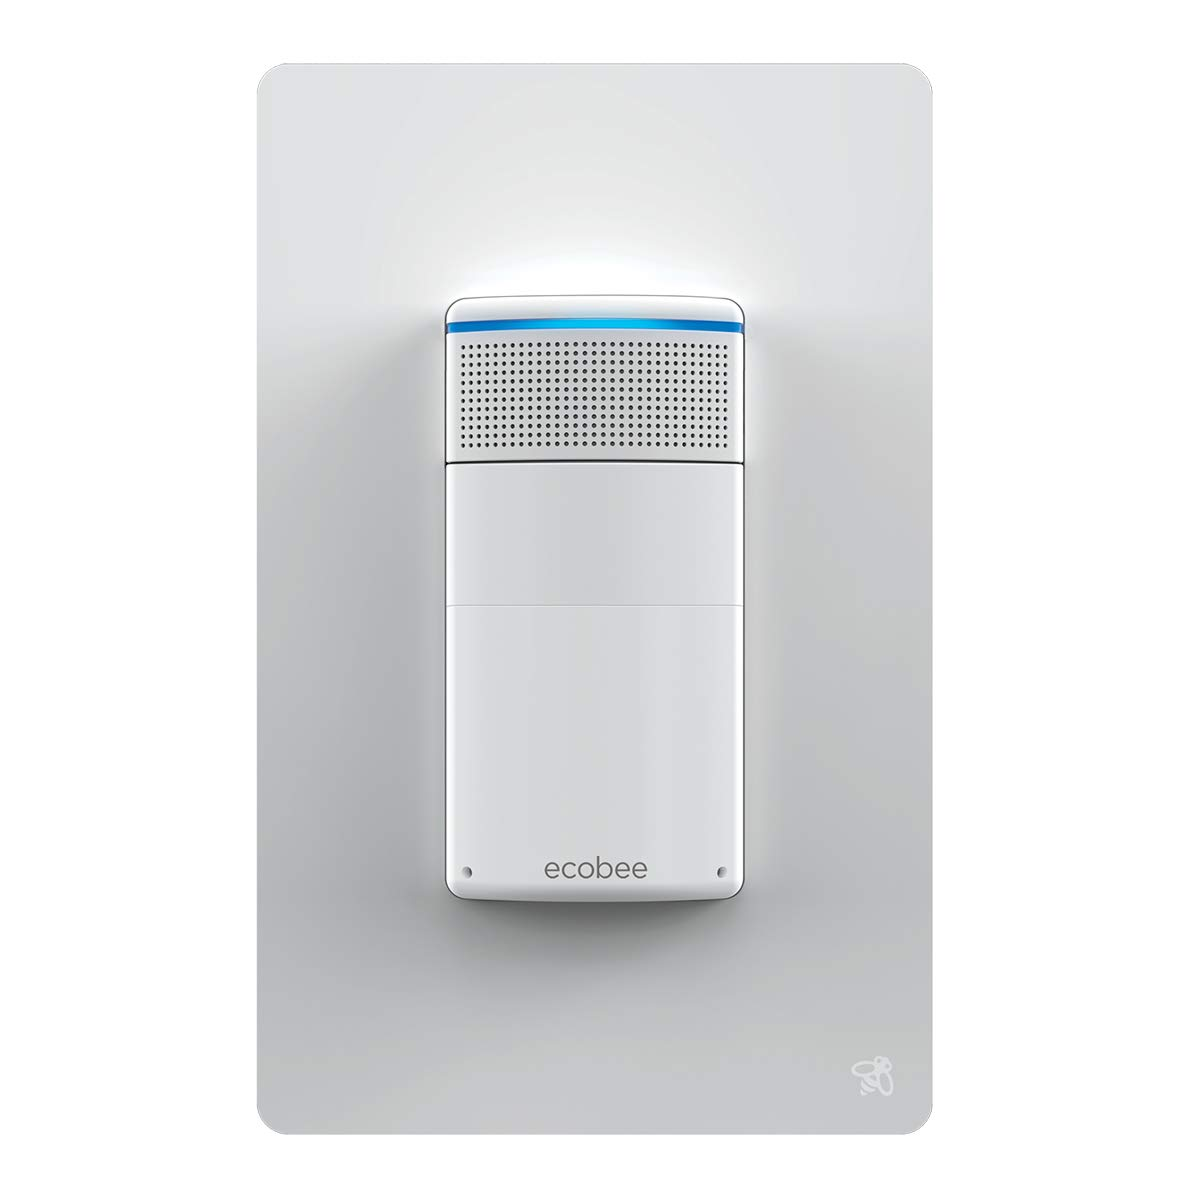 ecobee Switch+ Smart Light Switch, Amazon Alexa Built-in - - Amazon.com